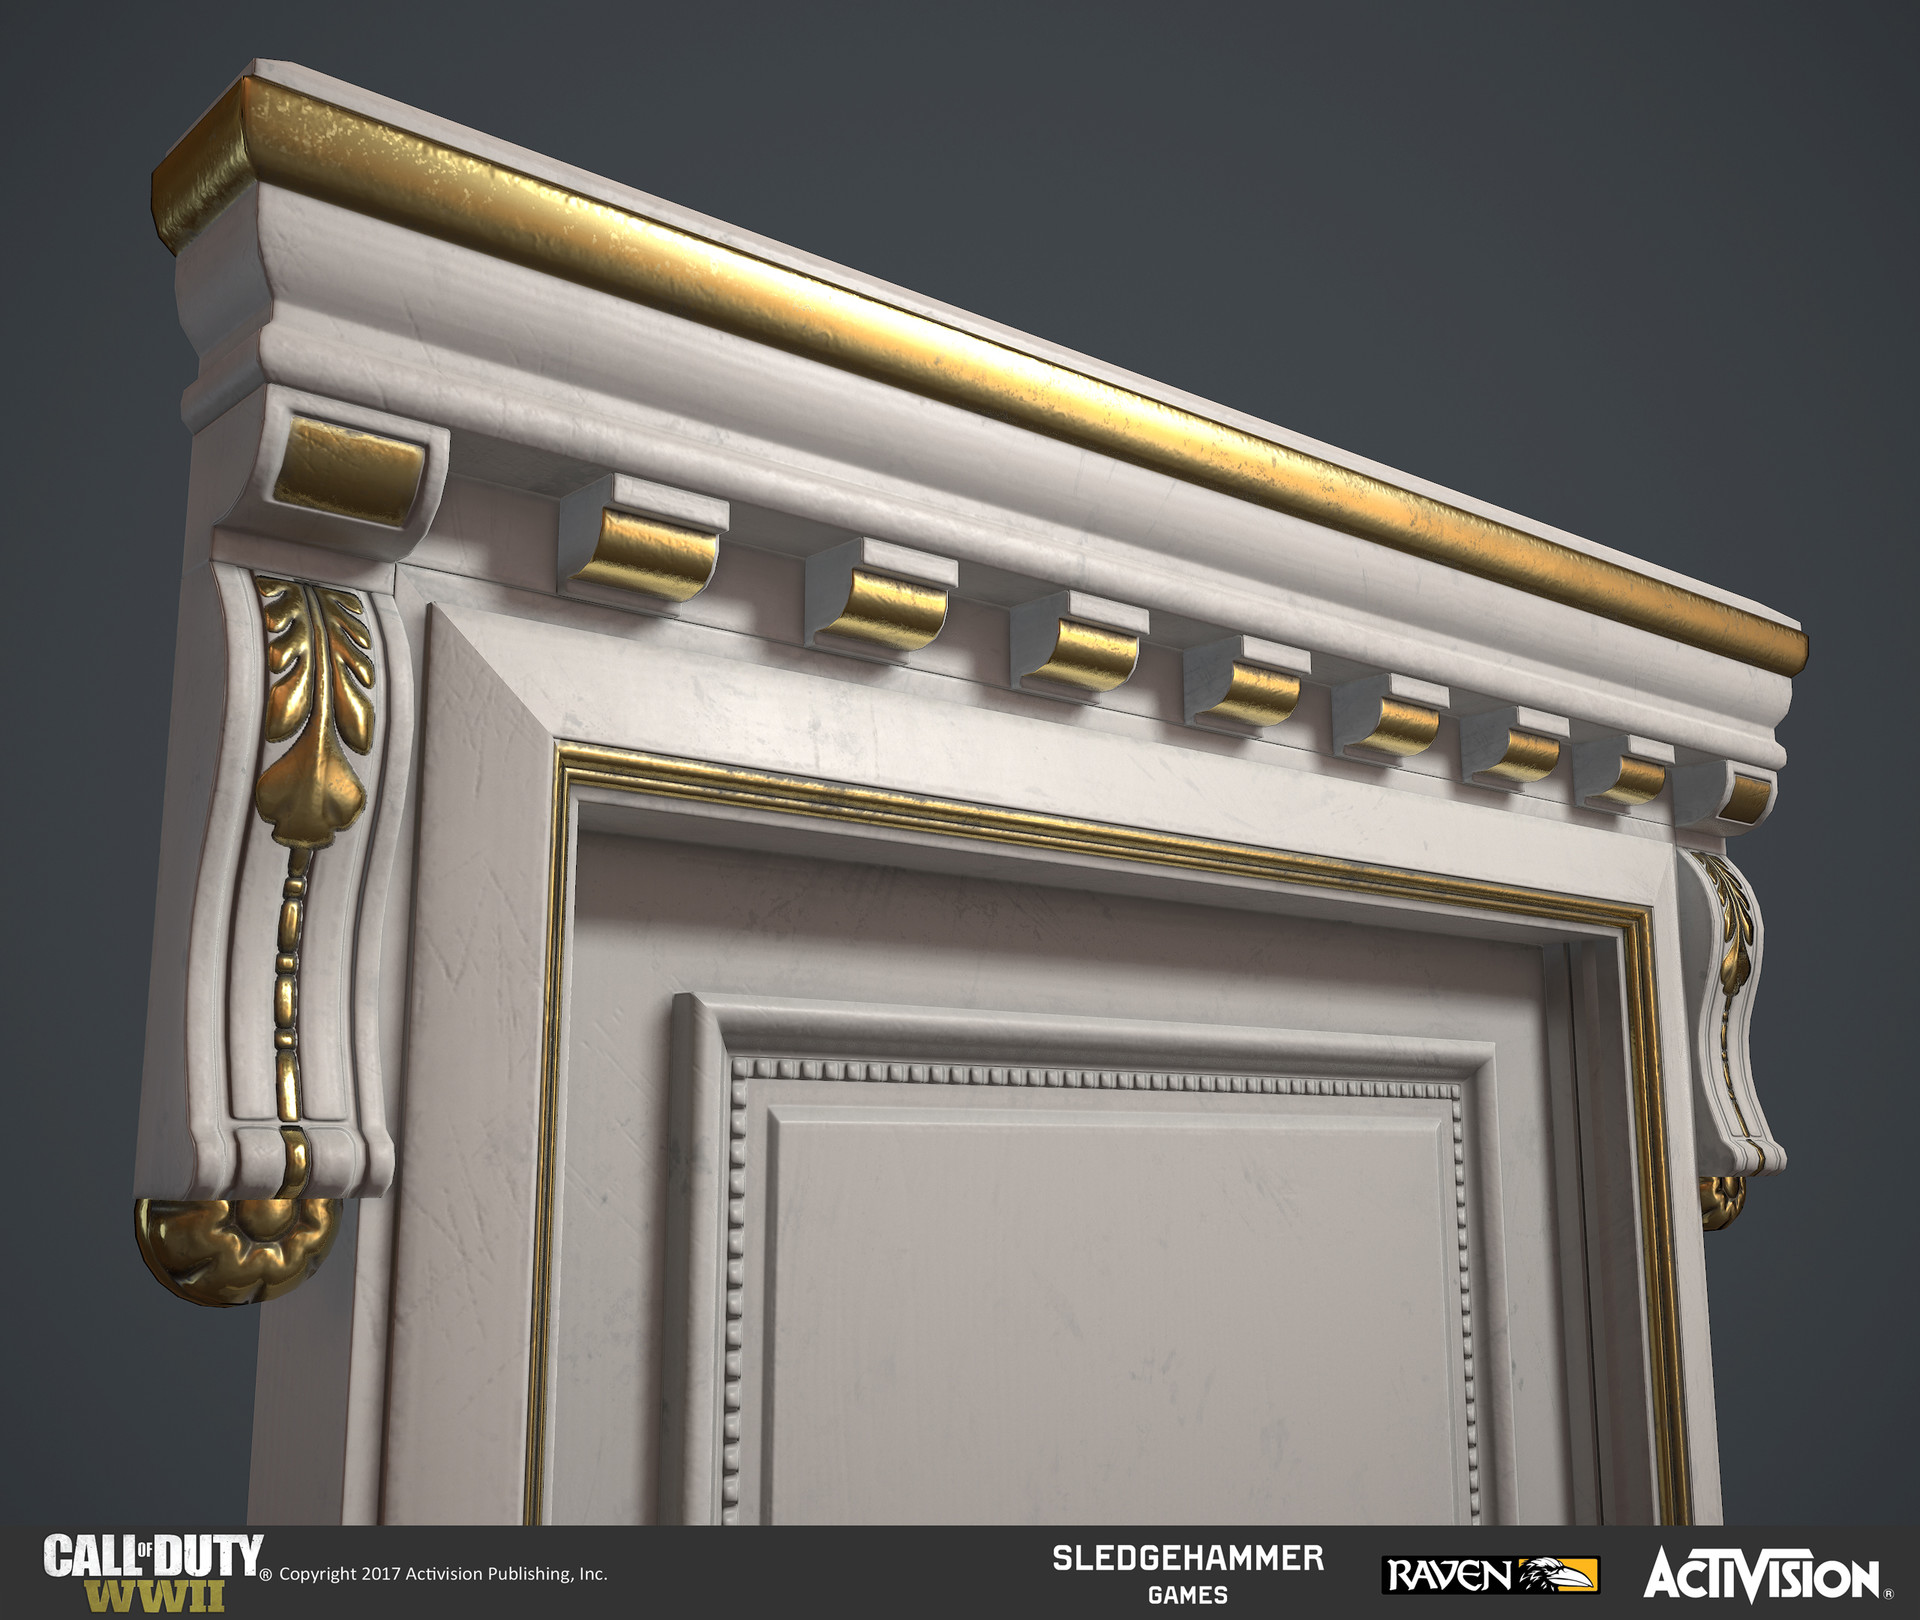 ArtStation - Call of Duty: WWII - Liberation - Paris